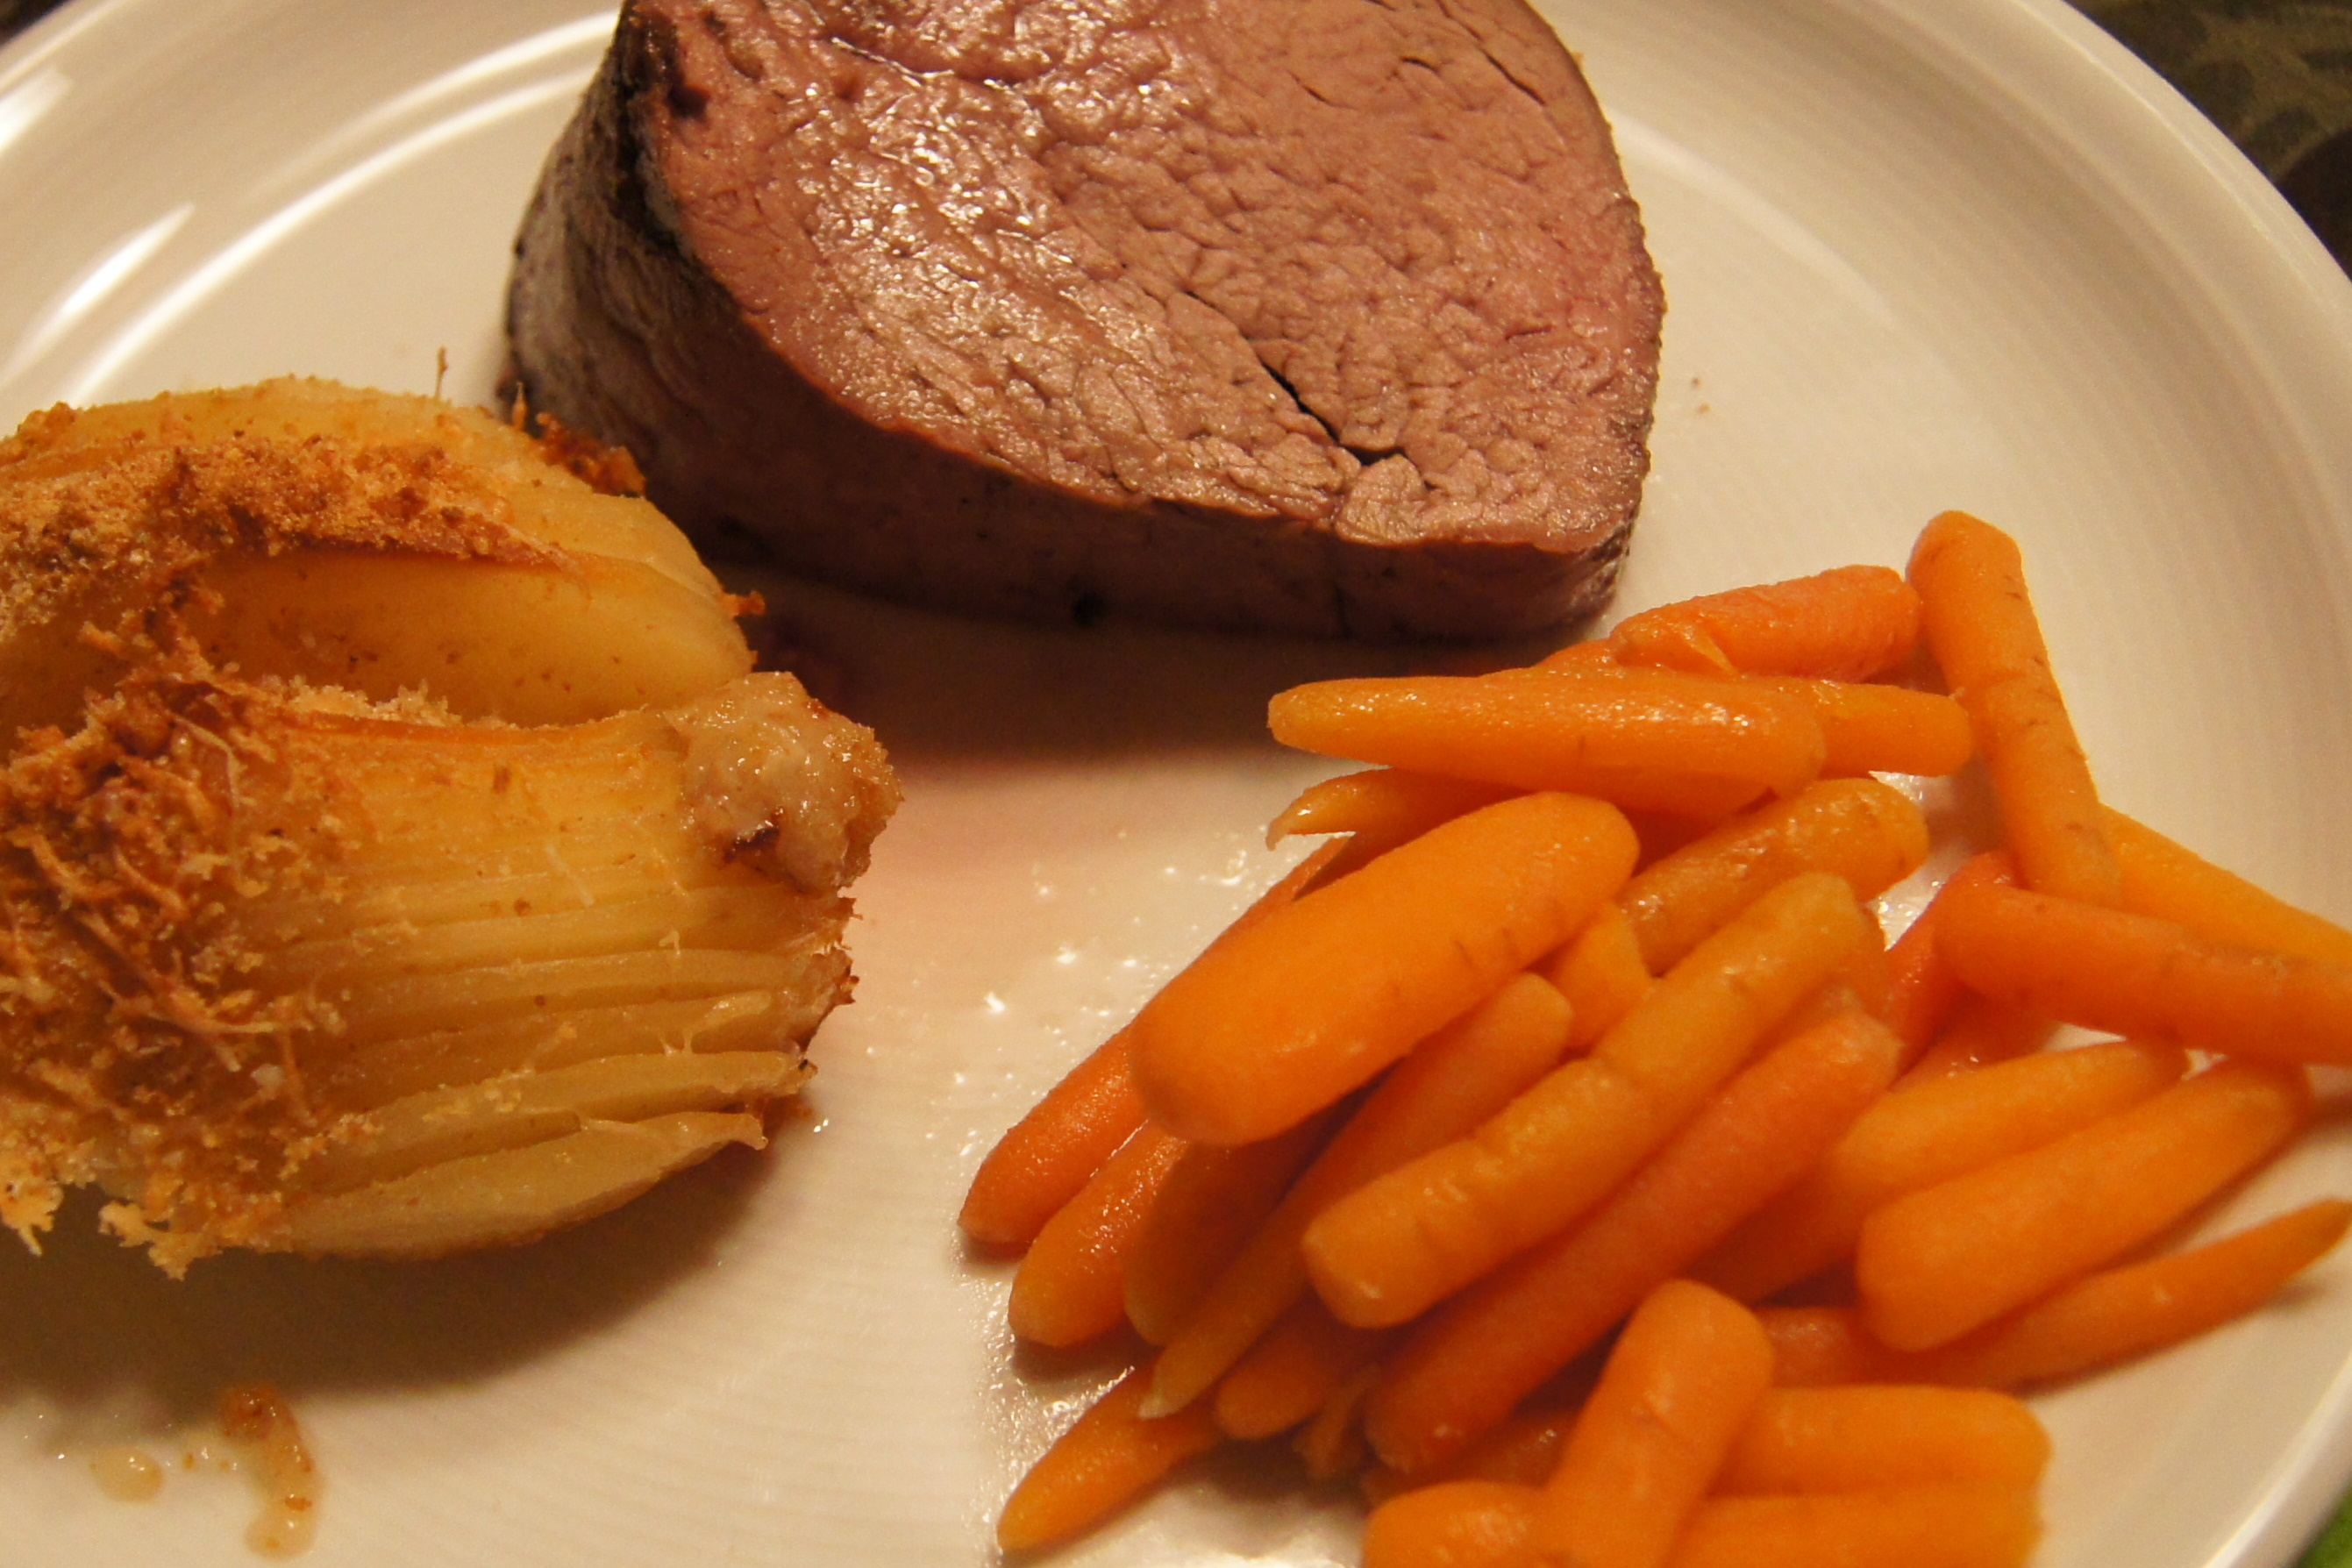 Beef Tenderloin, Accordion Potatoes, and Sugar glazed Baby Carrots